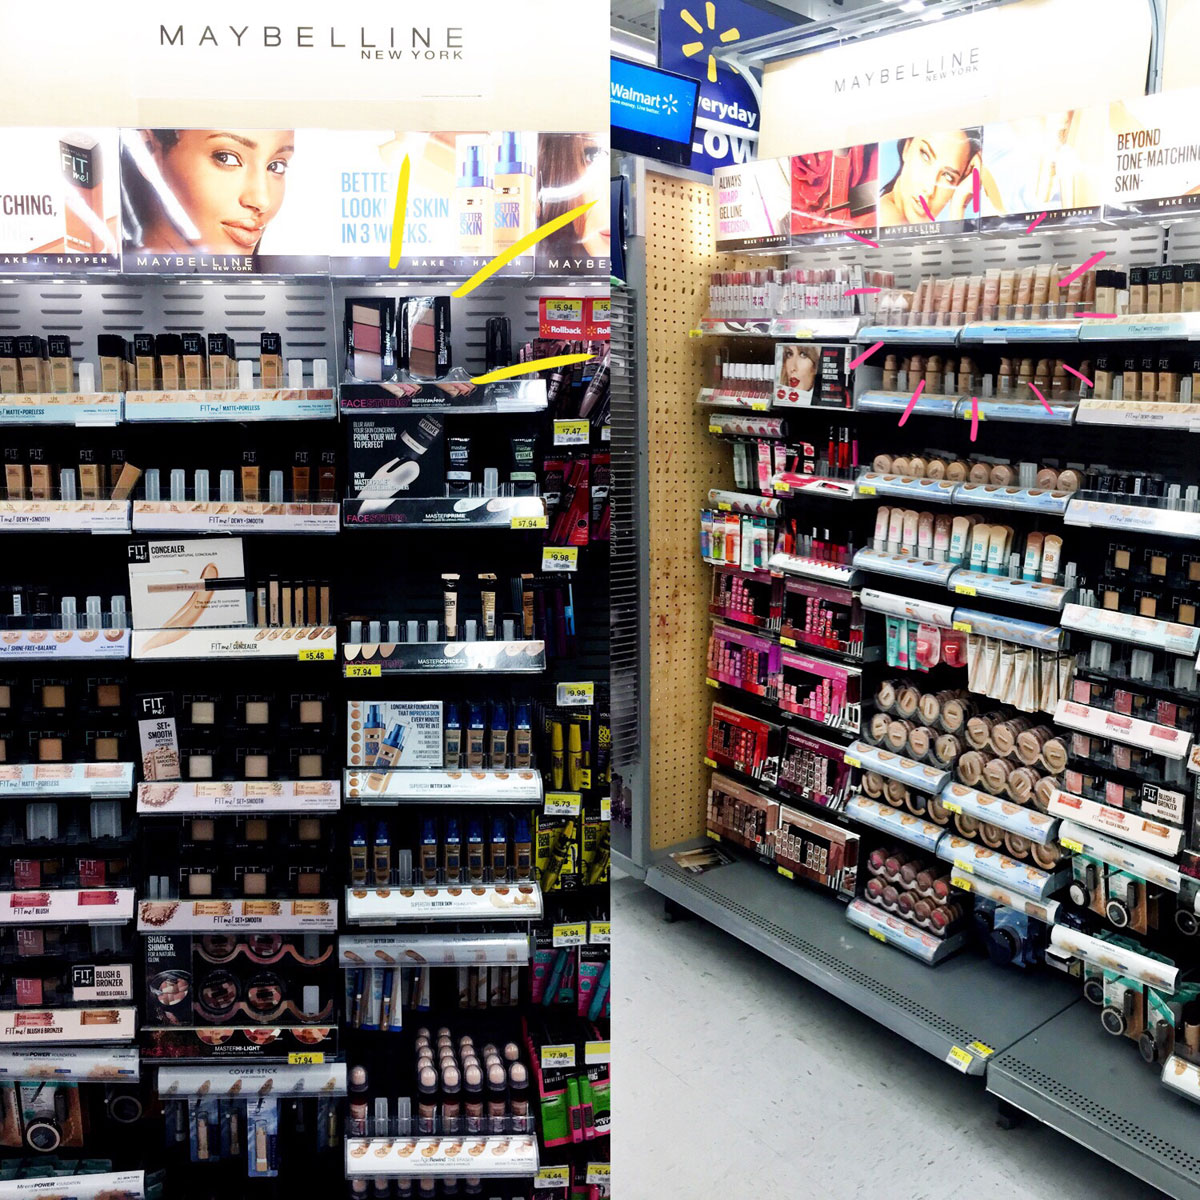 Maybelline Walmart Cosmetics Aisle // Everyday Contour Routine // Hello Rigby Seattle Beauty Blog